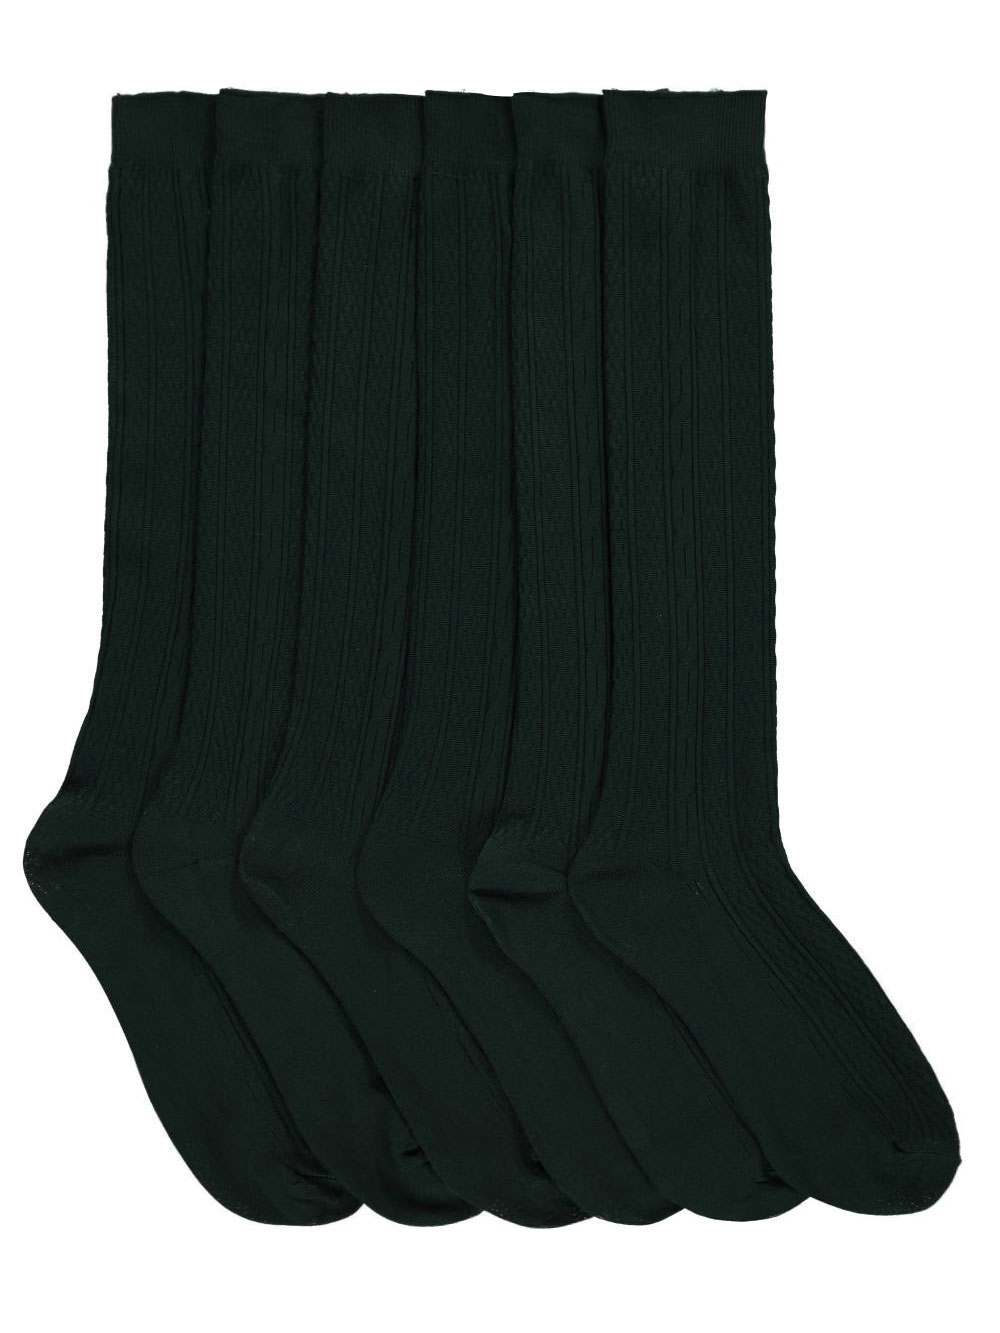 """Cookie's Brand """"Checker Cable"""" 3-Pack Dress Socks (Sizes 5 - 11)"""